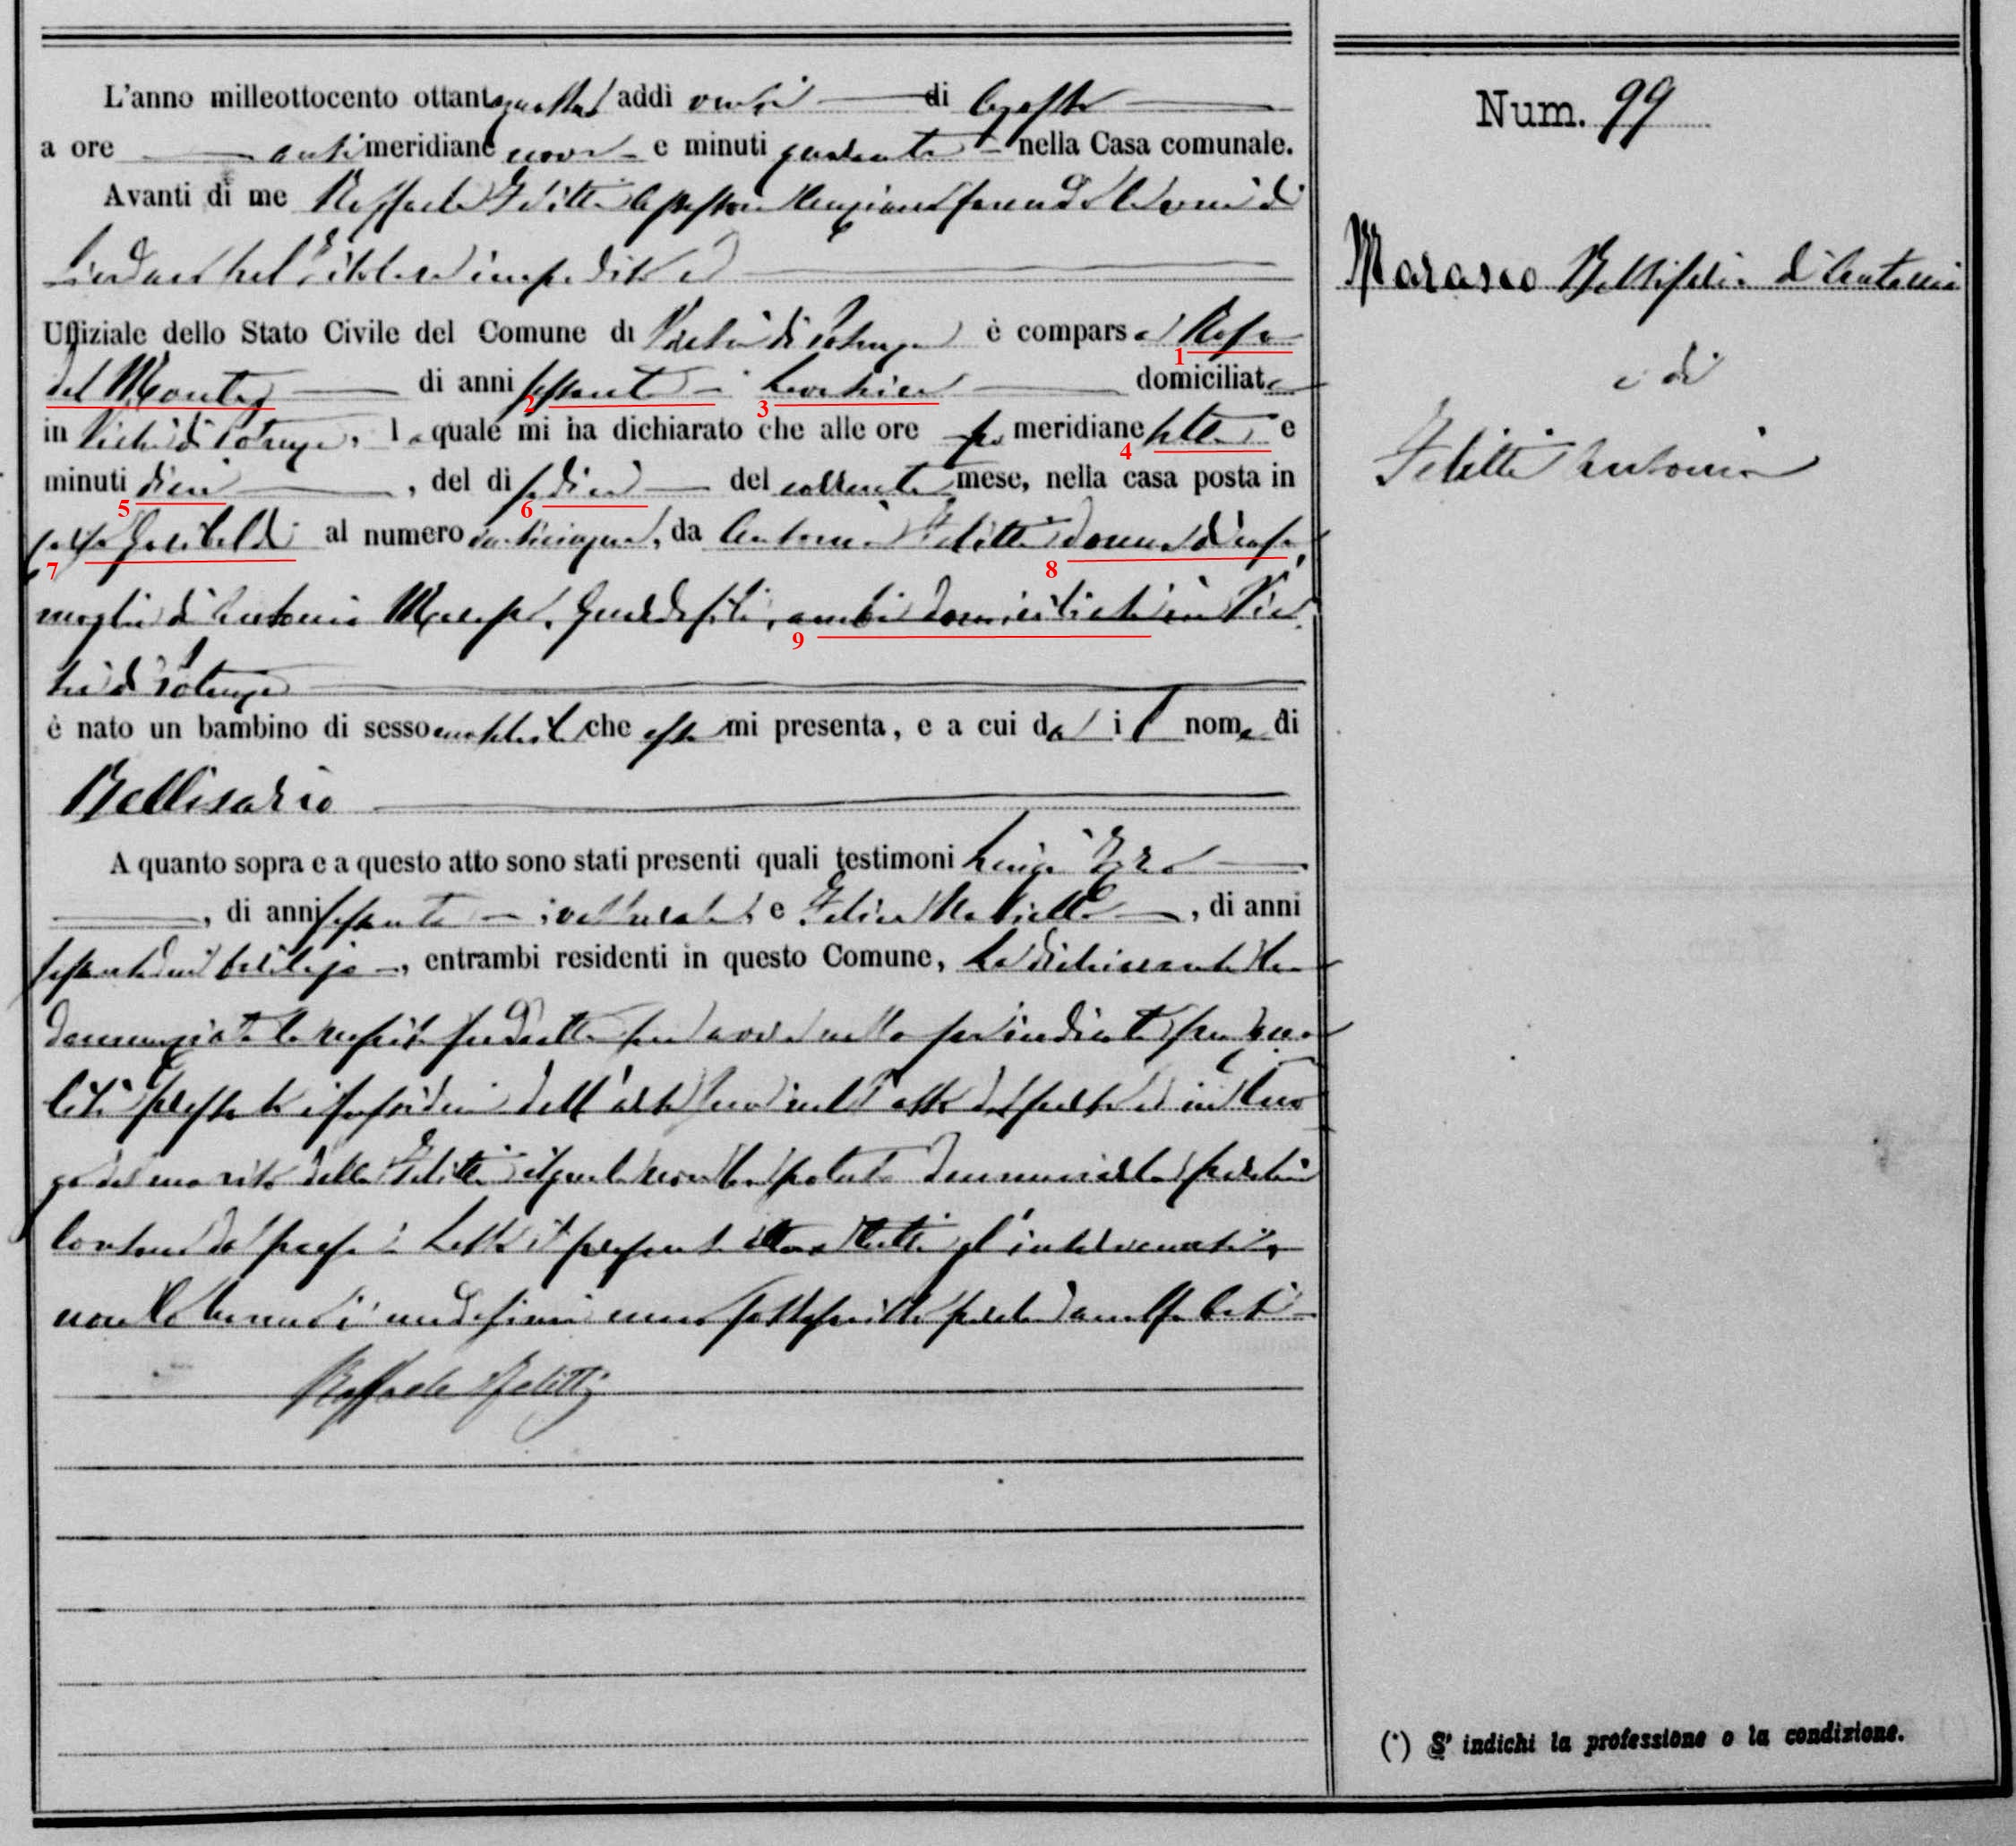 Bellisario Marasco birth record familysearch marked.jpg